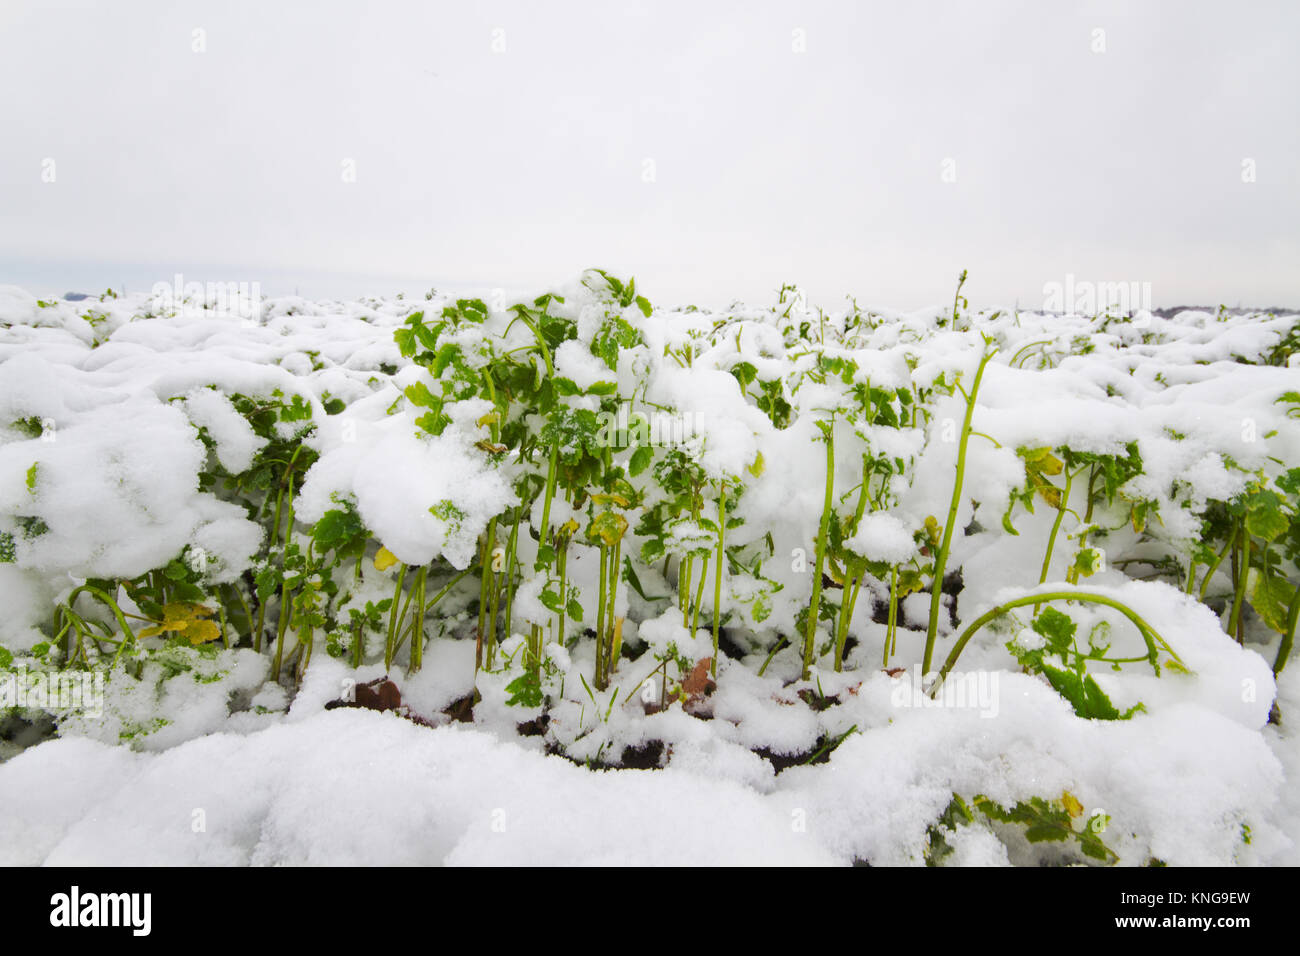 A field with tillage radish or Daikon in winter - Stock Image